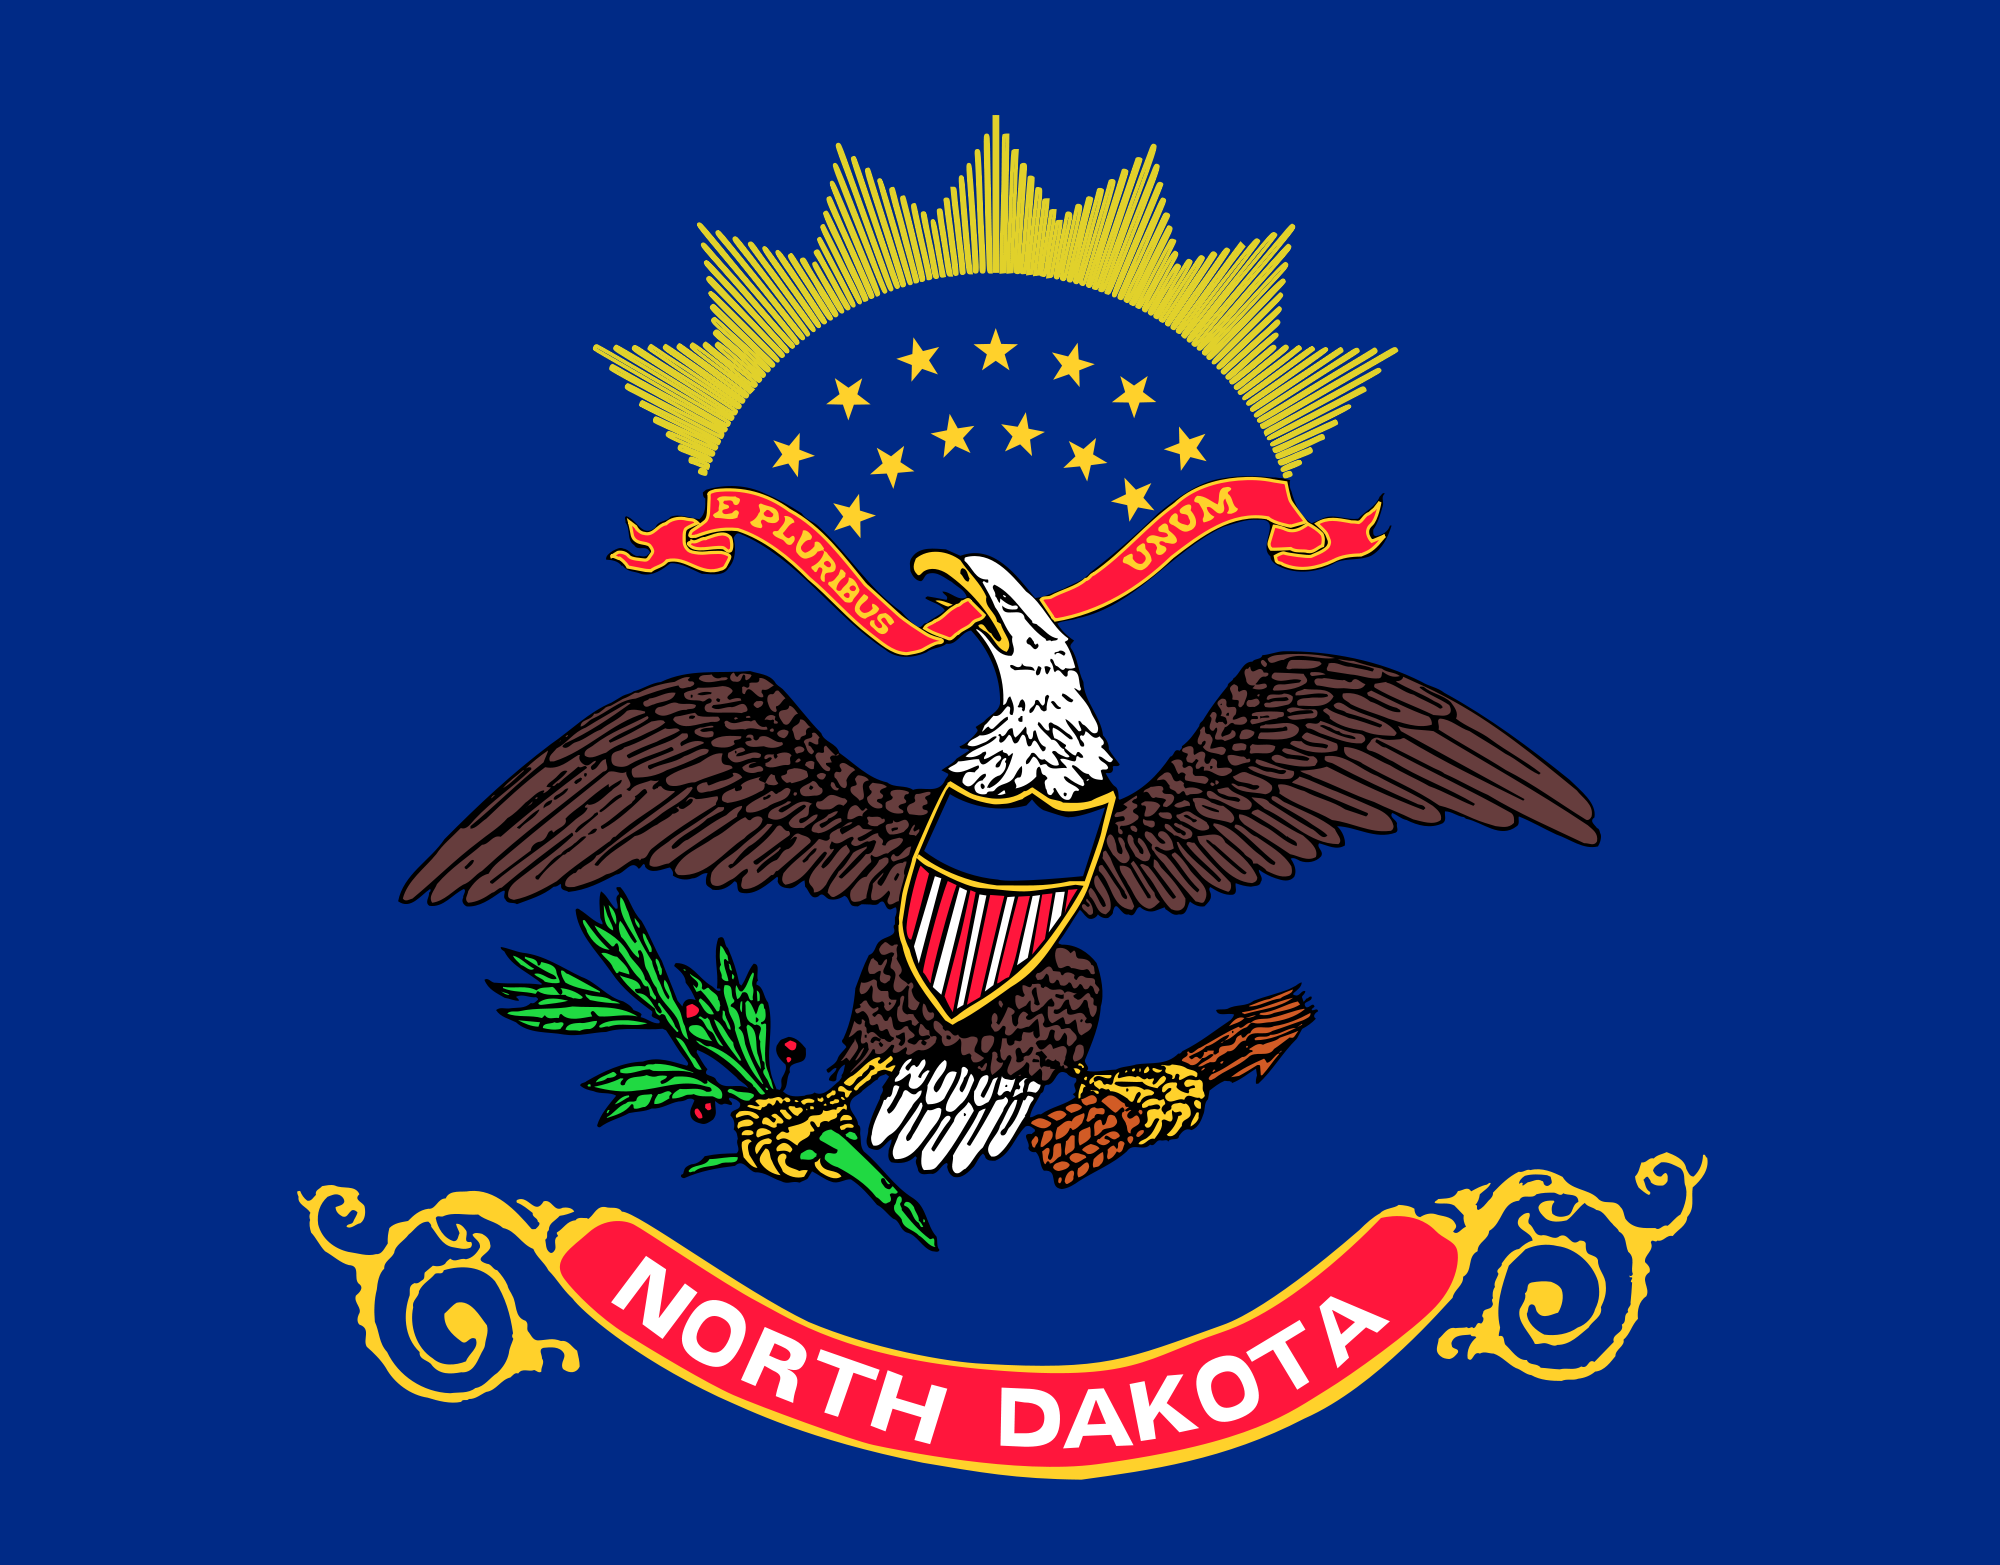 - NORTH DAKOTA DRONE REGISTRATION